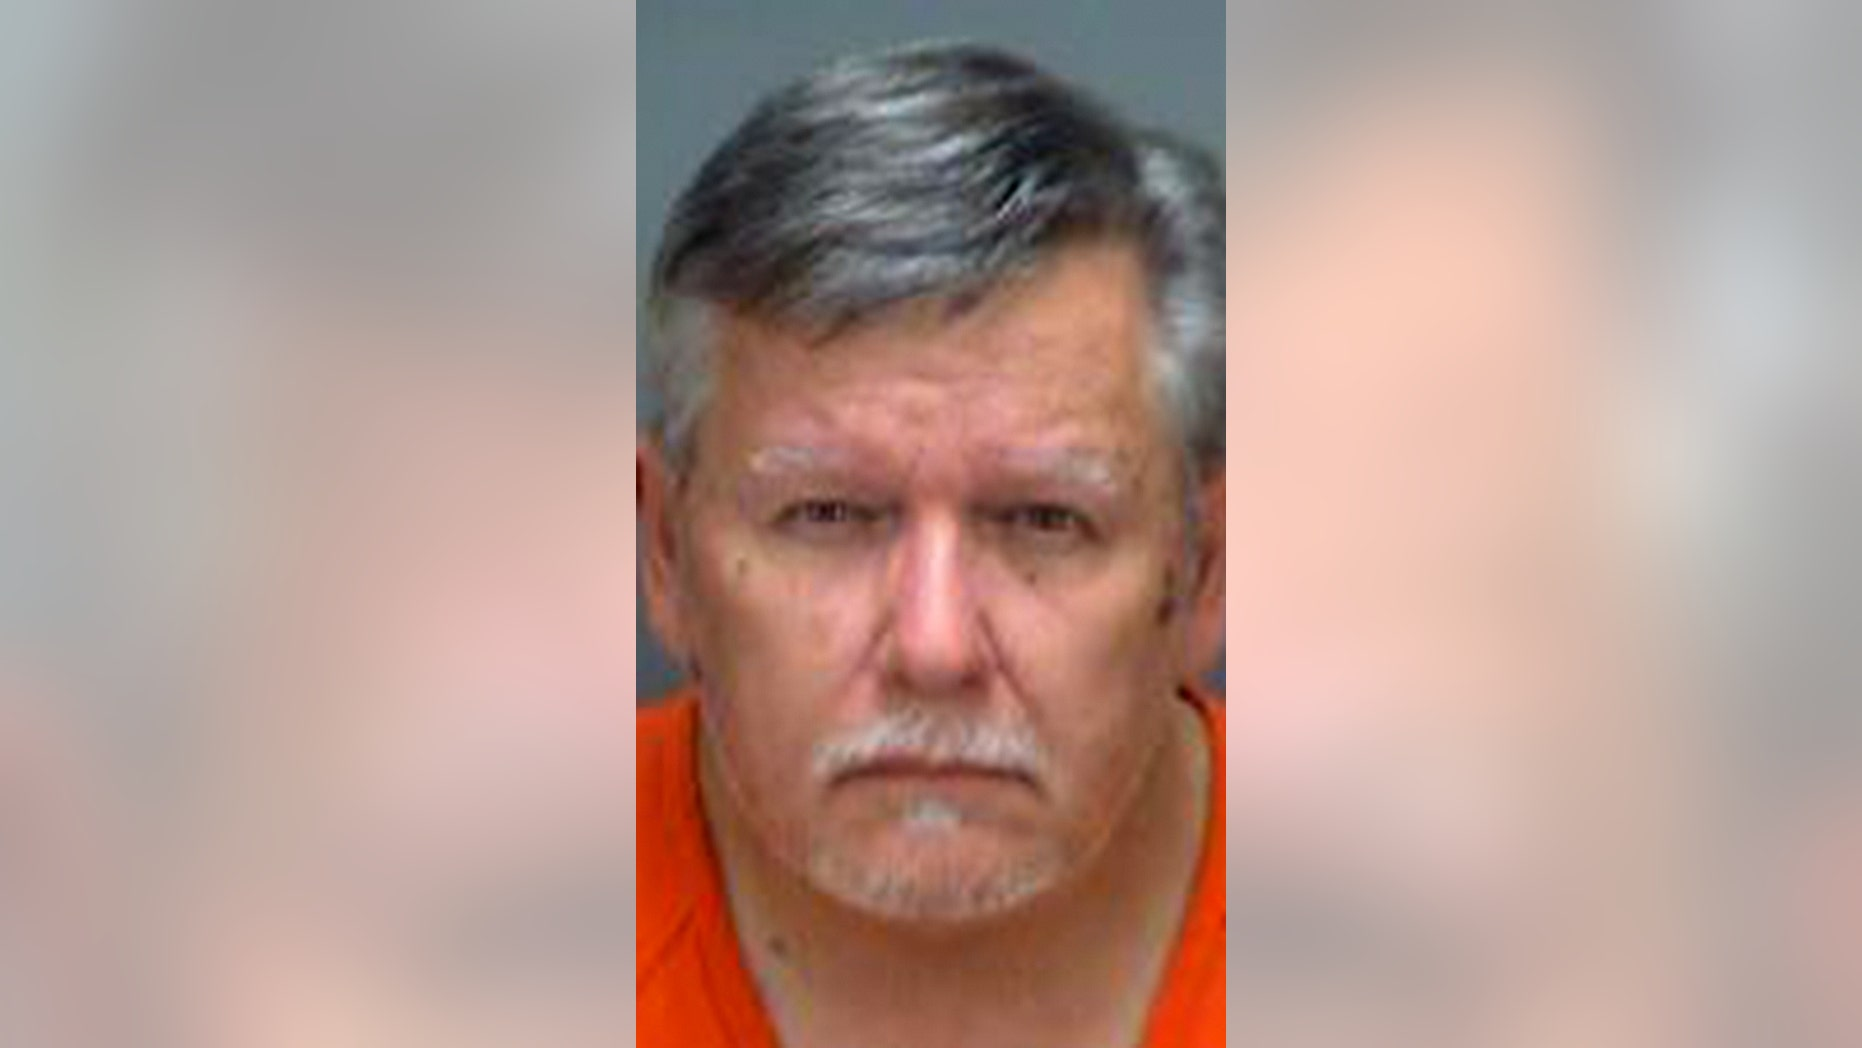 David Healey, 65, was arrested after allegedly beating a 3-foot alligator with a shovel.